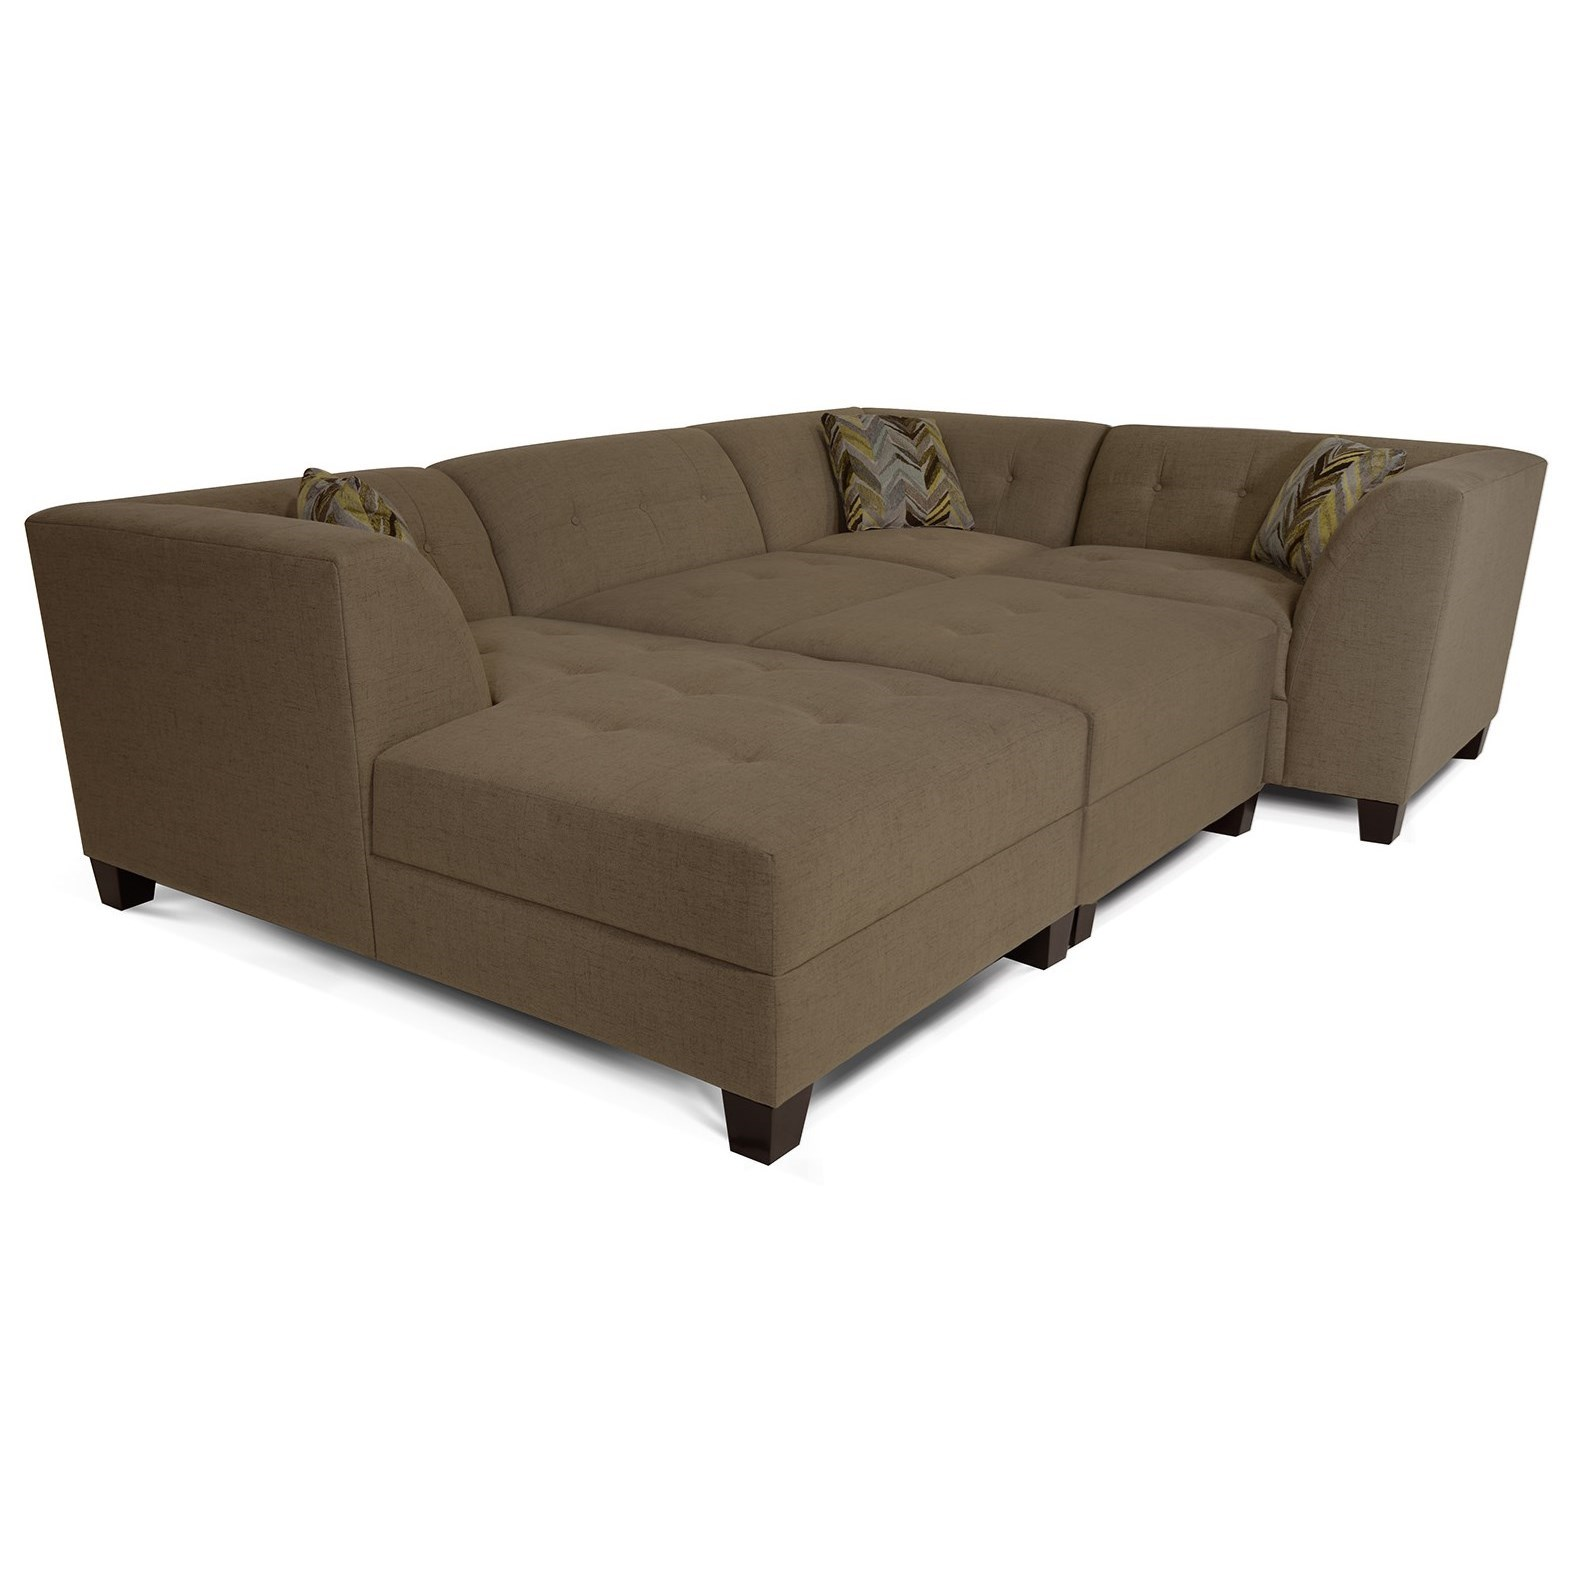 England Miller Sectional Sofa With 3 5 Seats Furniture And Appliancemart Sofa Sectional